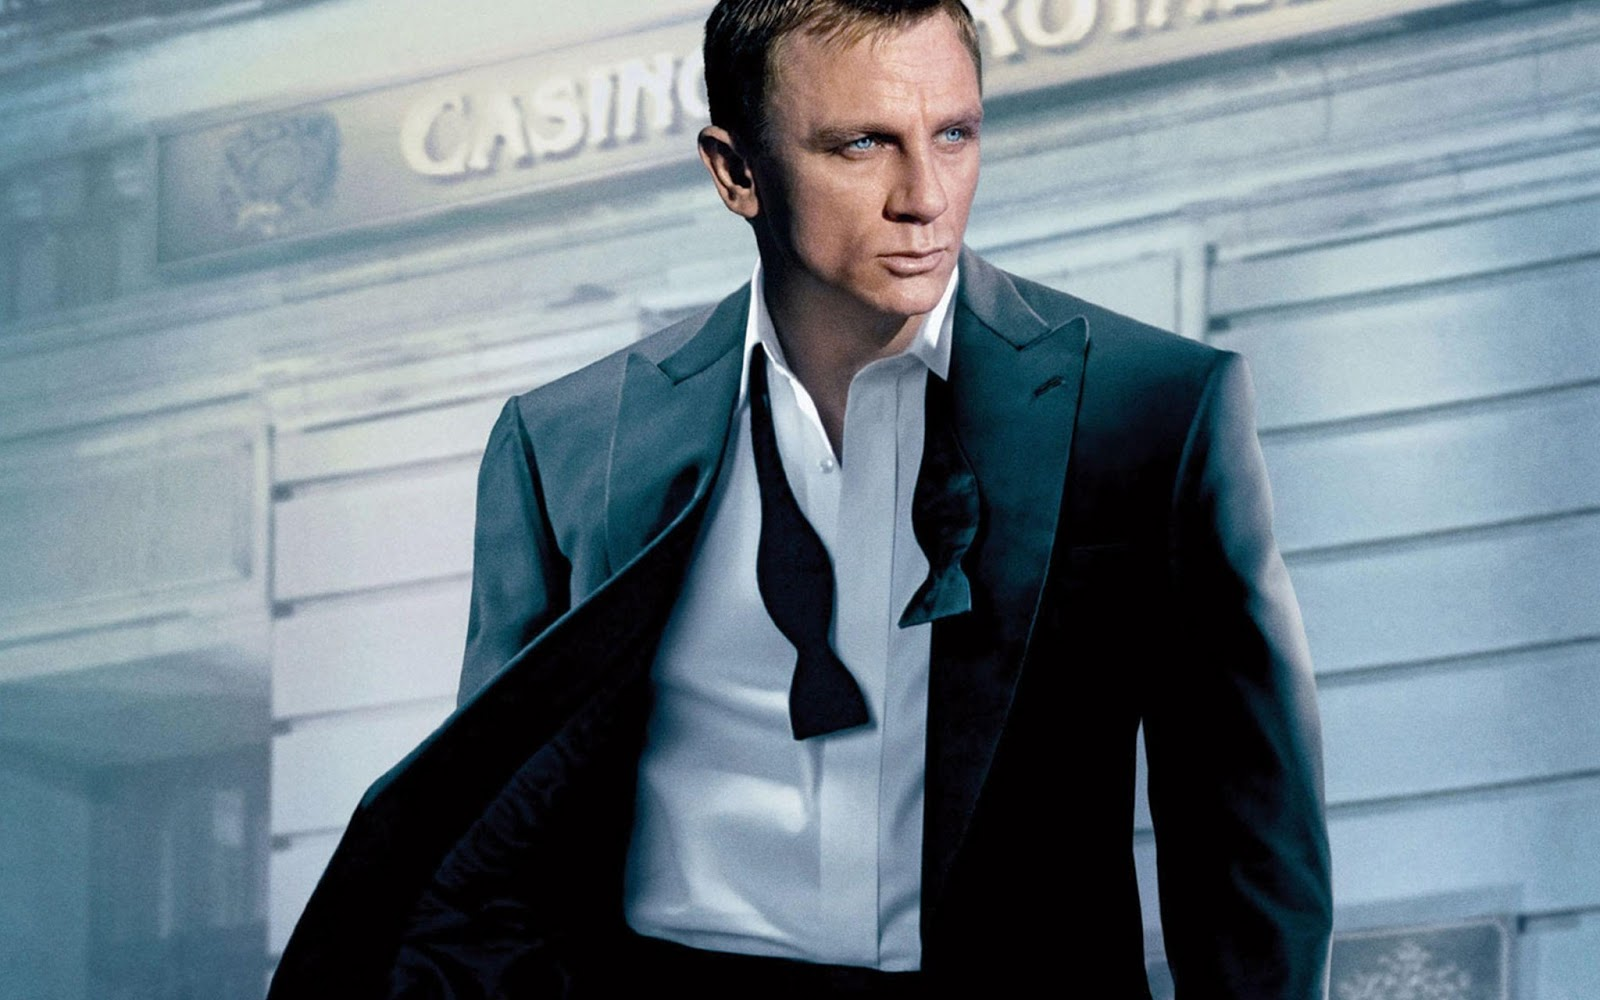 Hd wallpapers fine hollywood james bond best size high - James bond images hd ...